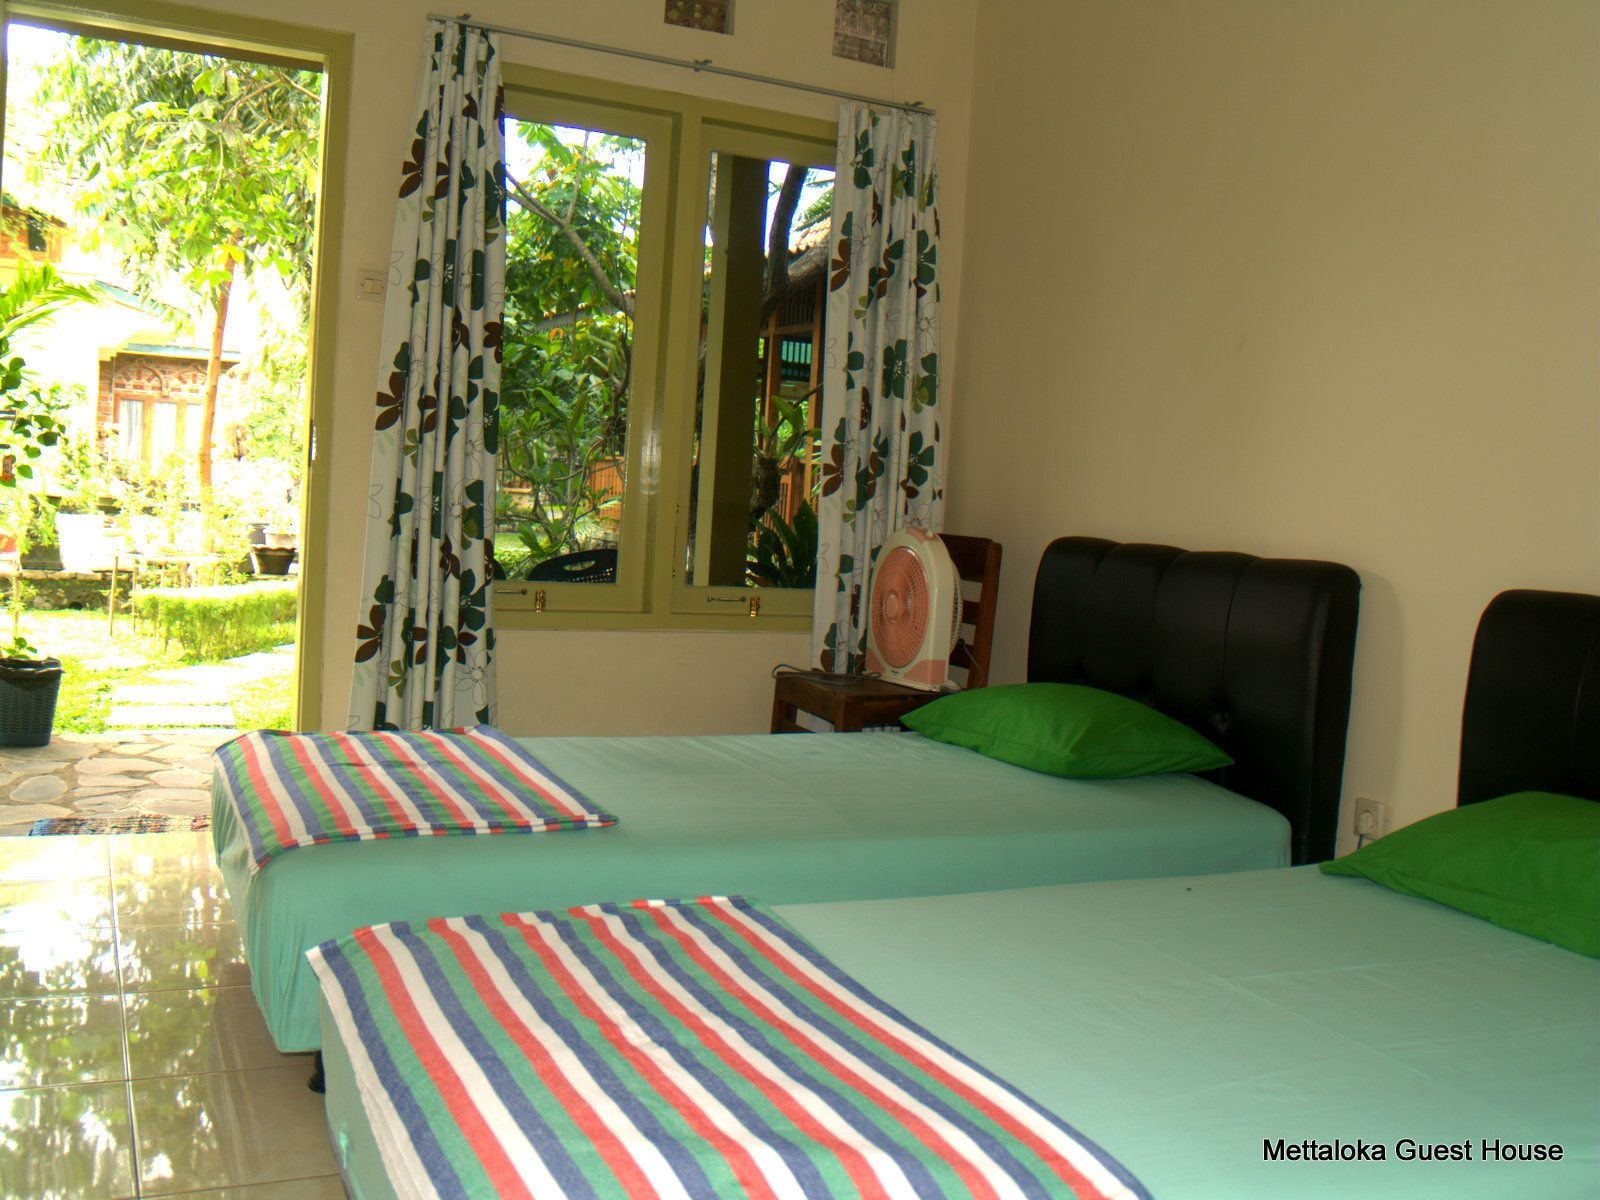 Mettaloka Guest House and Art Space, Magelang